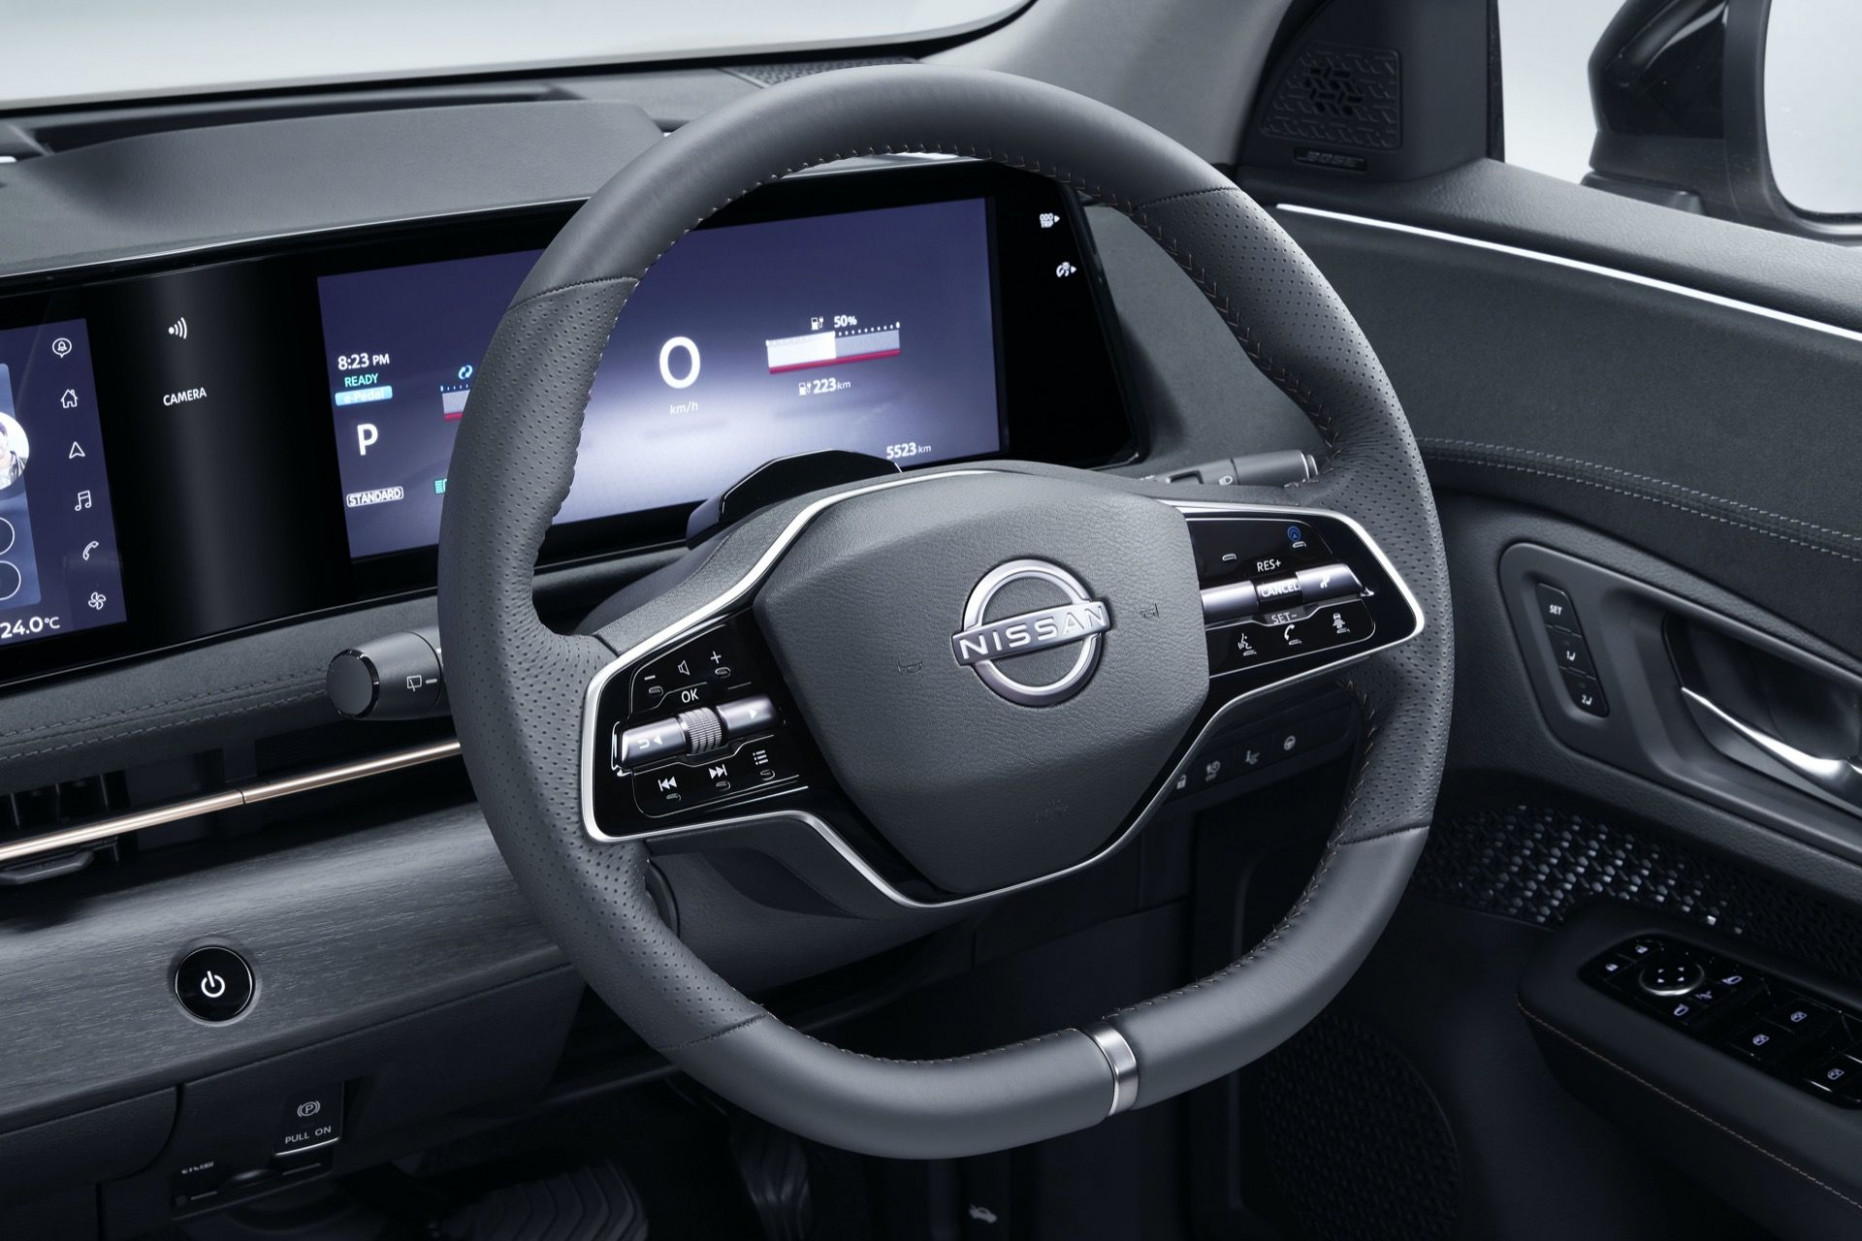 Performance Nissan Concept 2022 Interior